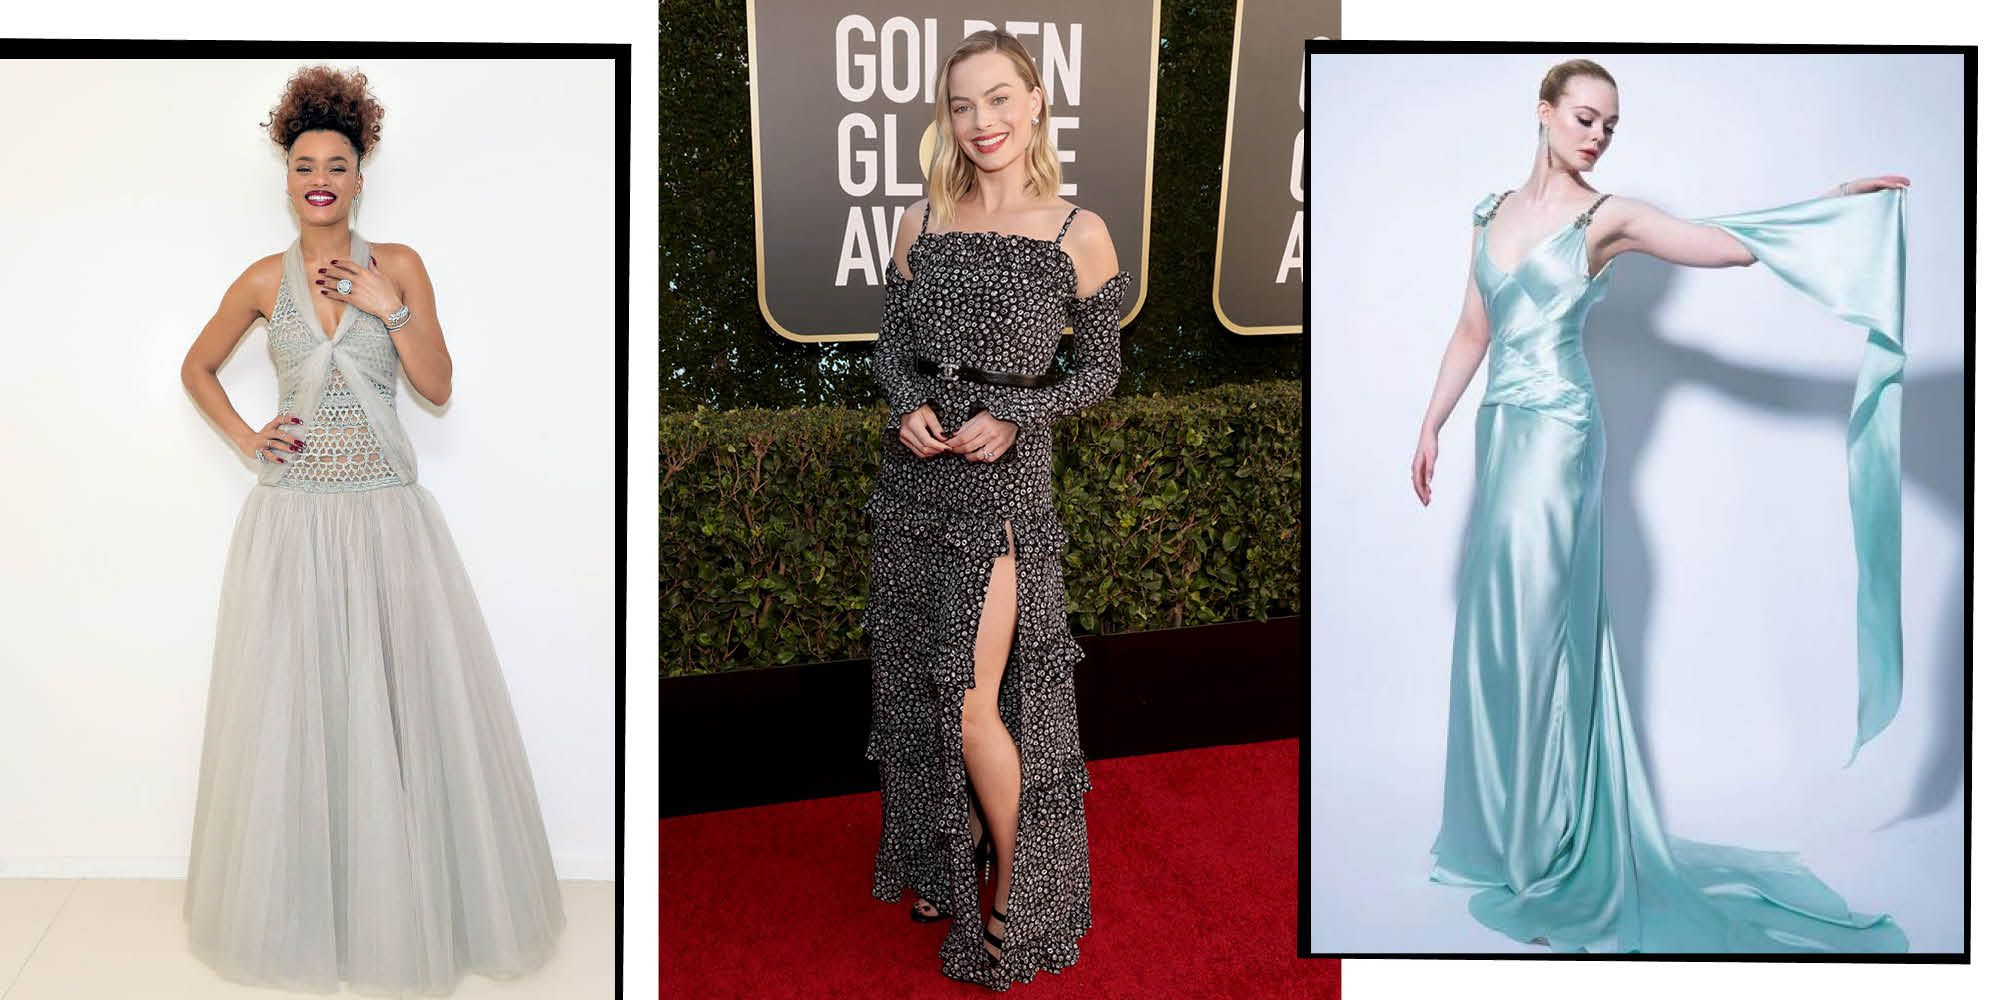 Golden Globes 2021: The Best Red Carpet Looks From Margot Robbie To Cynthia Erivo